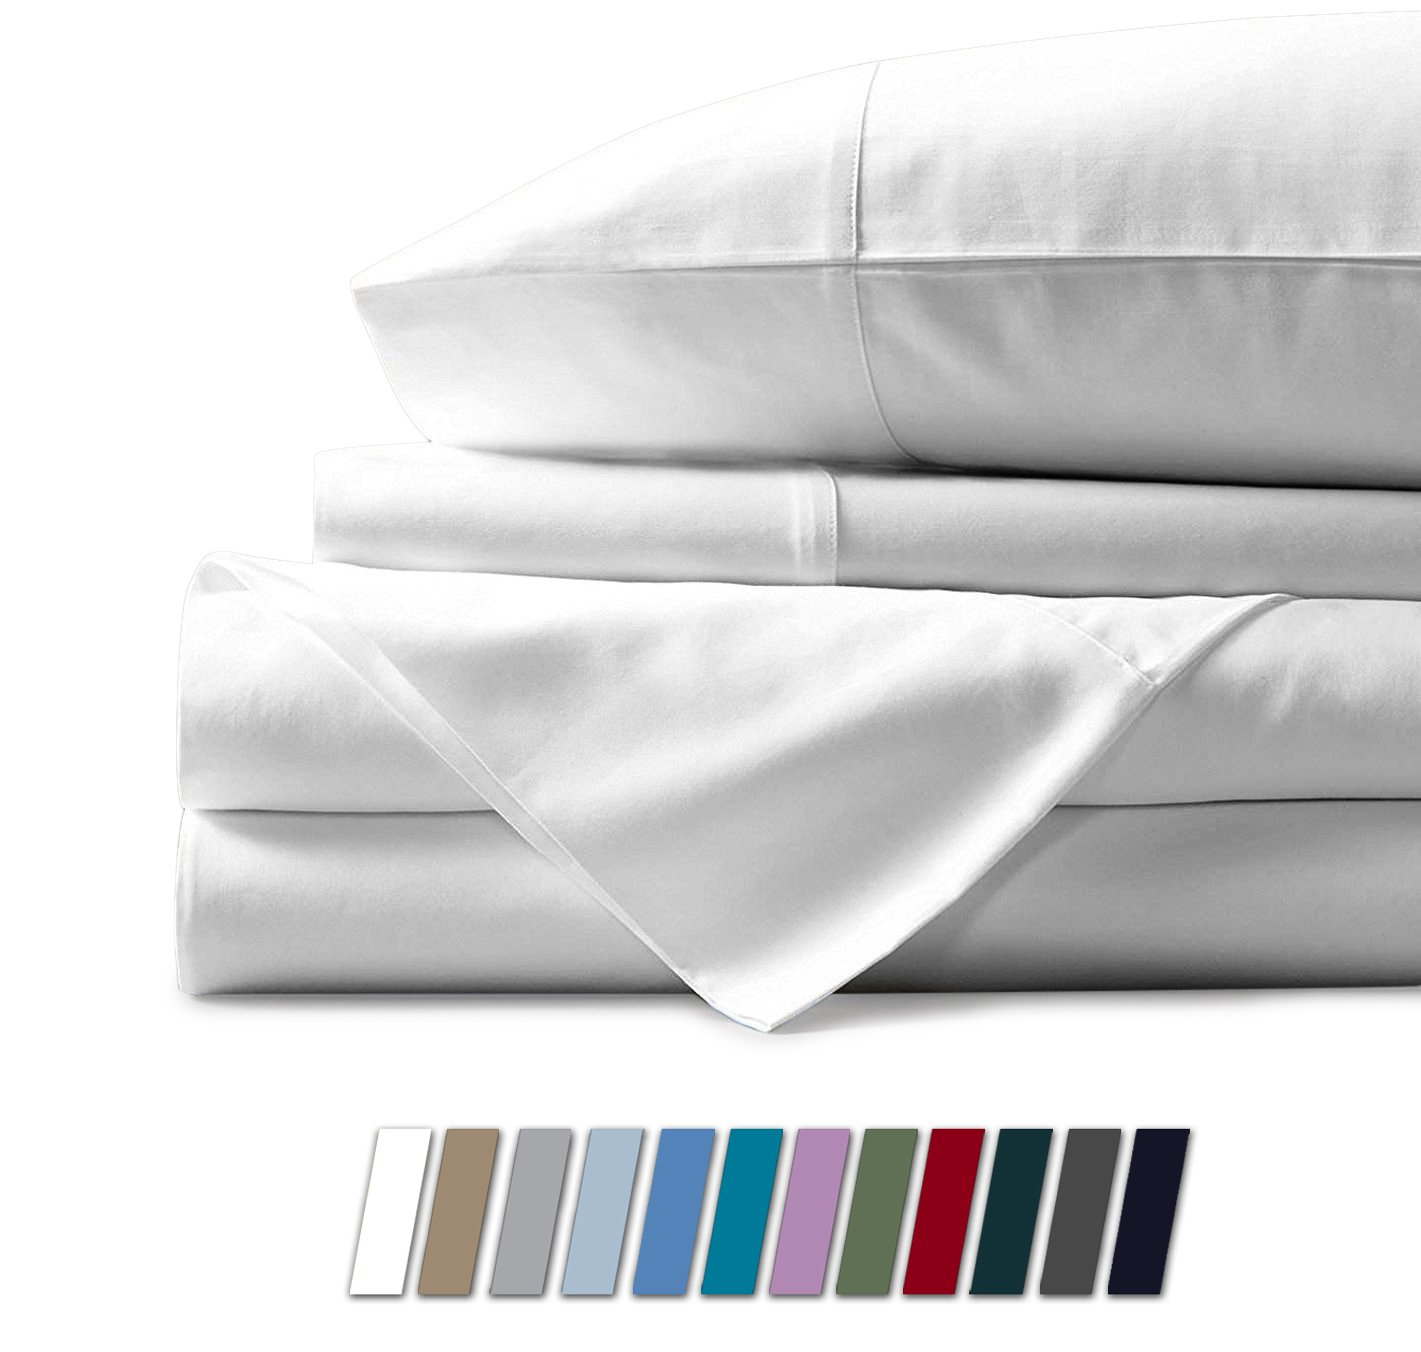 Mayfair Linen Hotel Collection 100% Egyptian Cotton - 500 Thread Count 4 Piece Sheet Set- Color White,Size King by Mayfair Linen (Image #1)